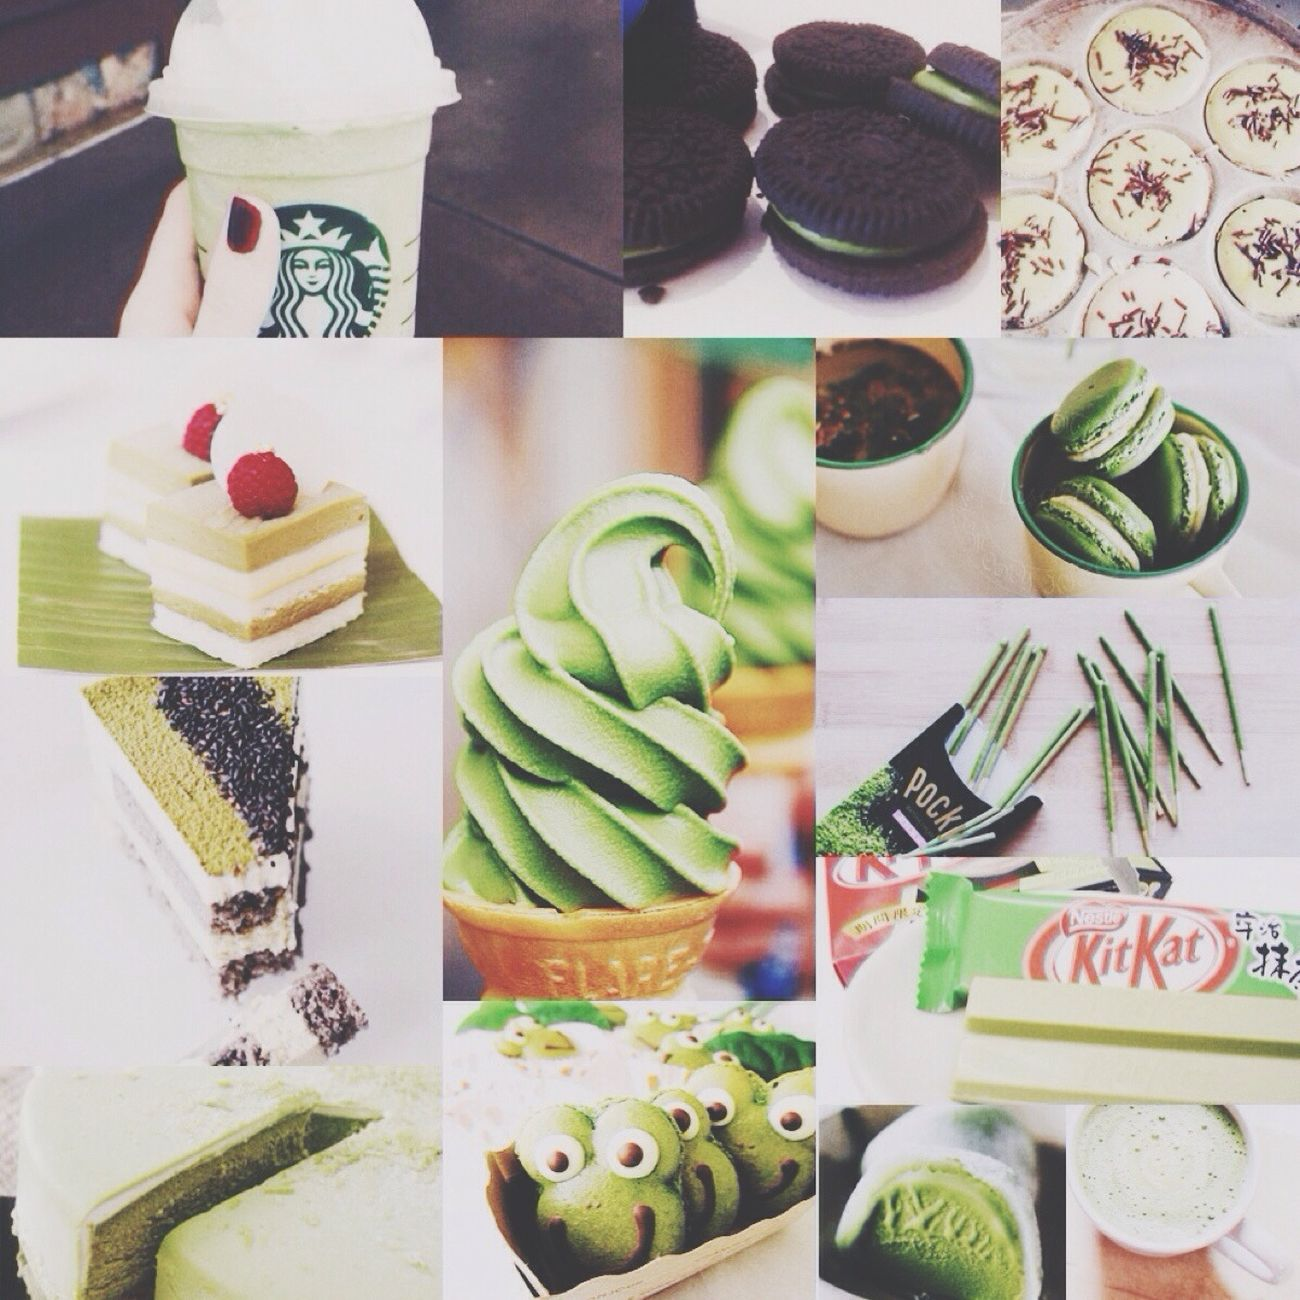 What's For Dinner? Greenteakitkat Greentea Cake ???